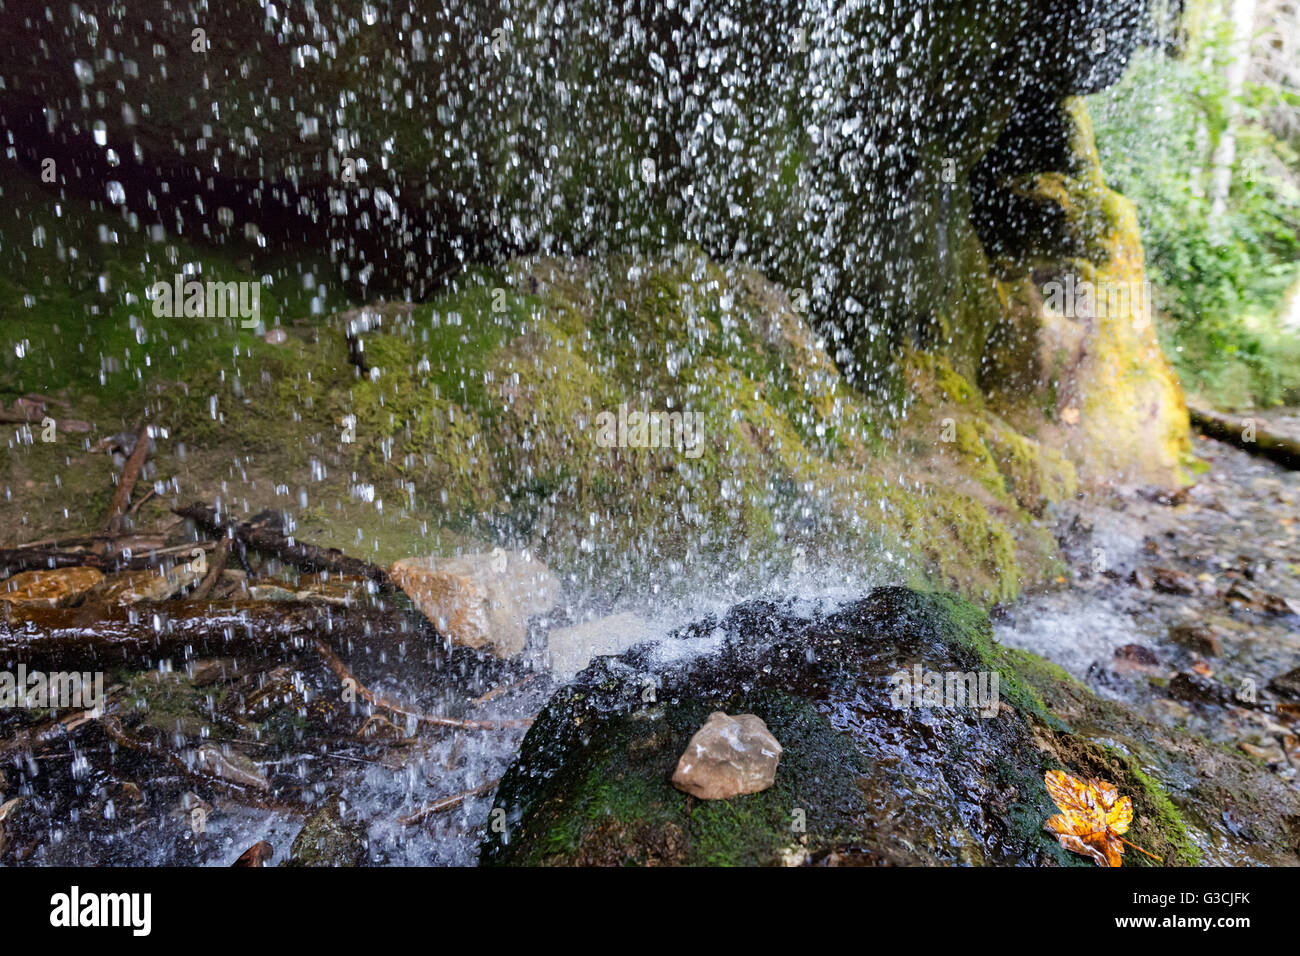 Germany, Baden-Württemberg, Black Forest, Wutach Gorge, drops of water and moss - Stock Image